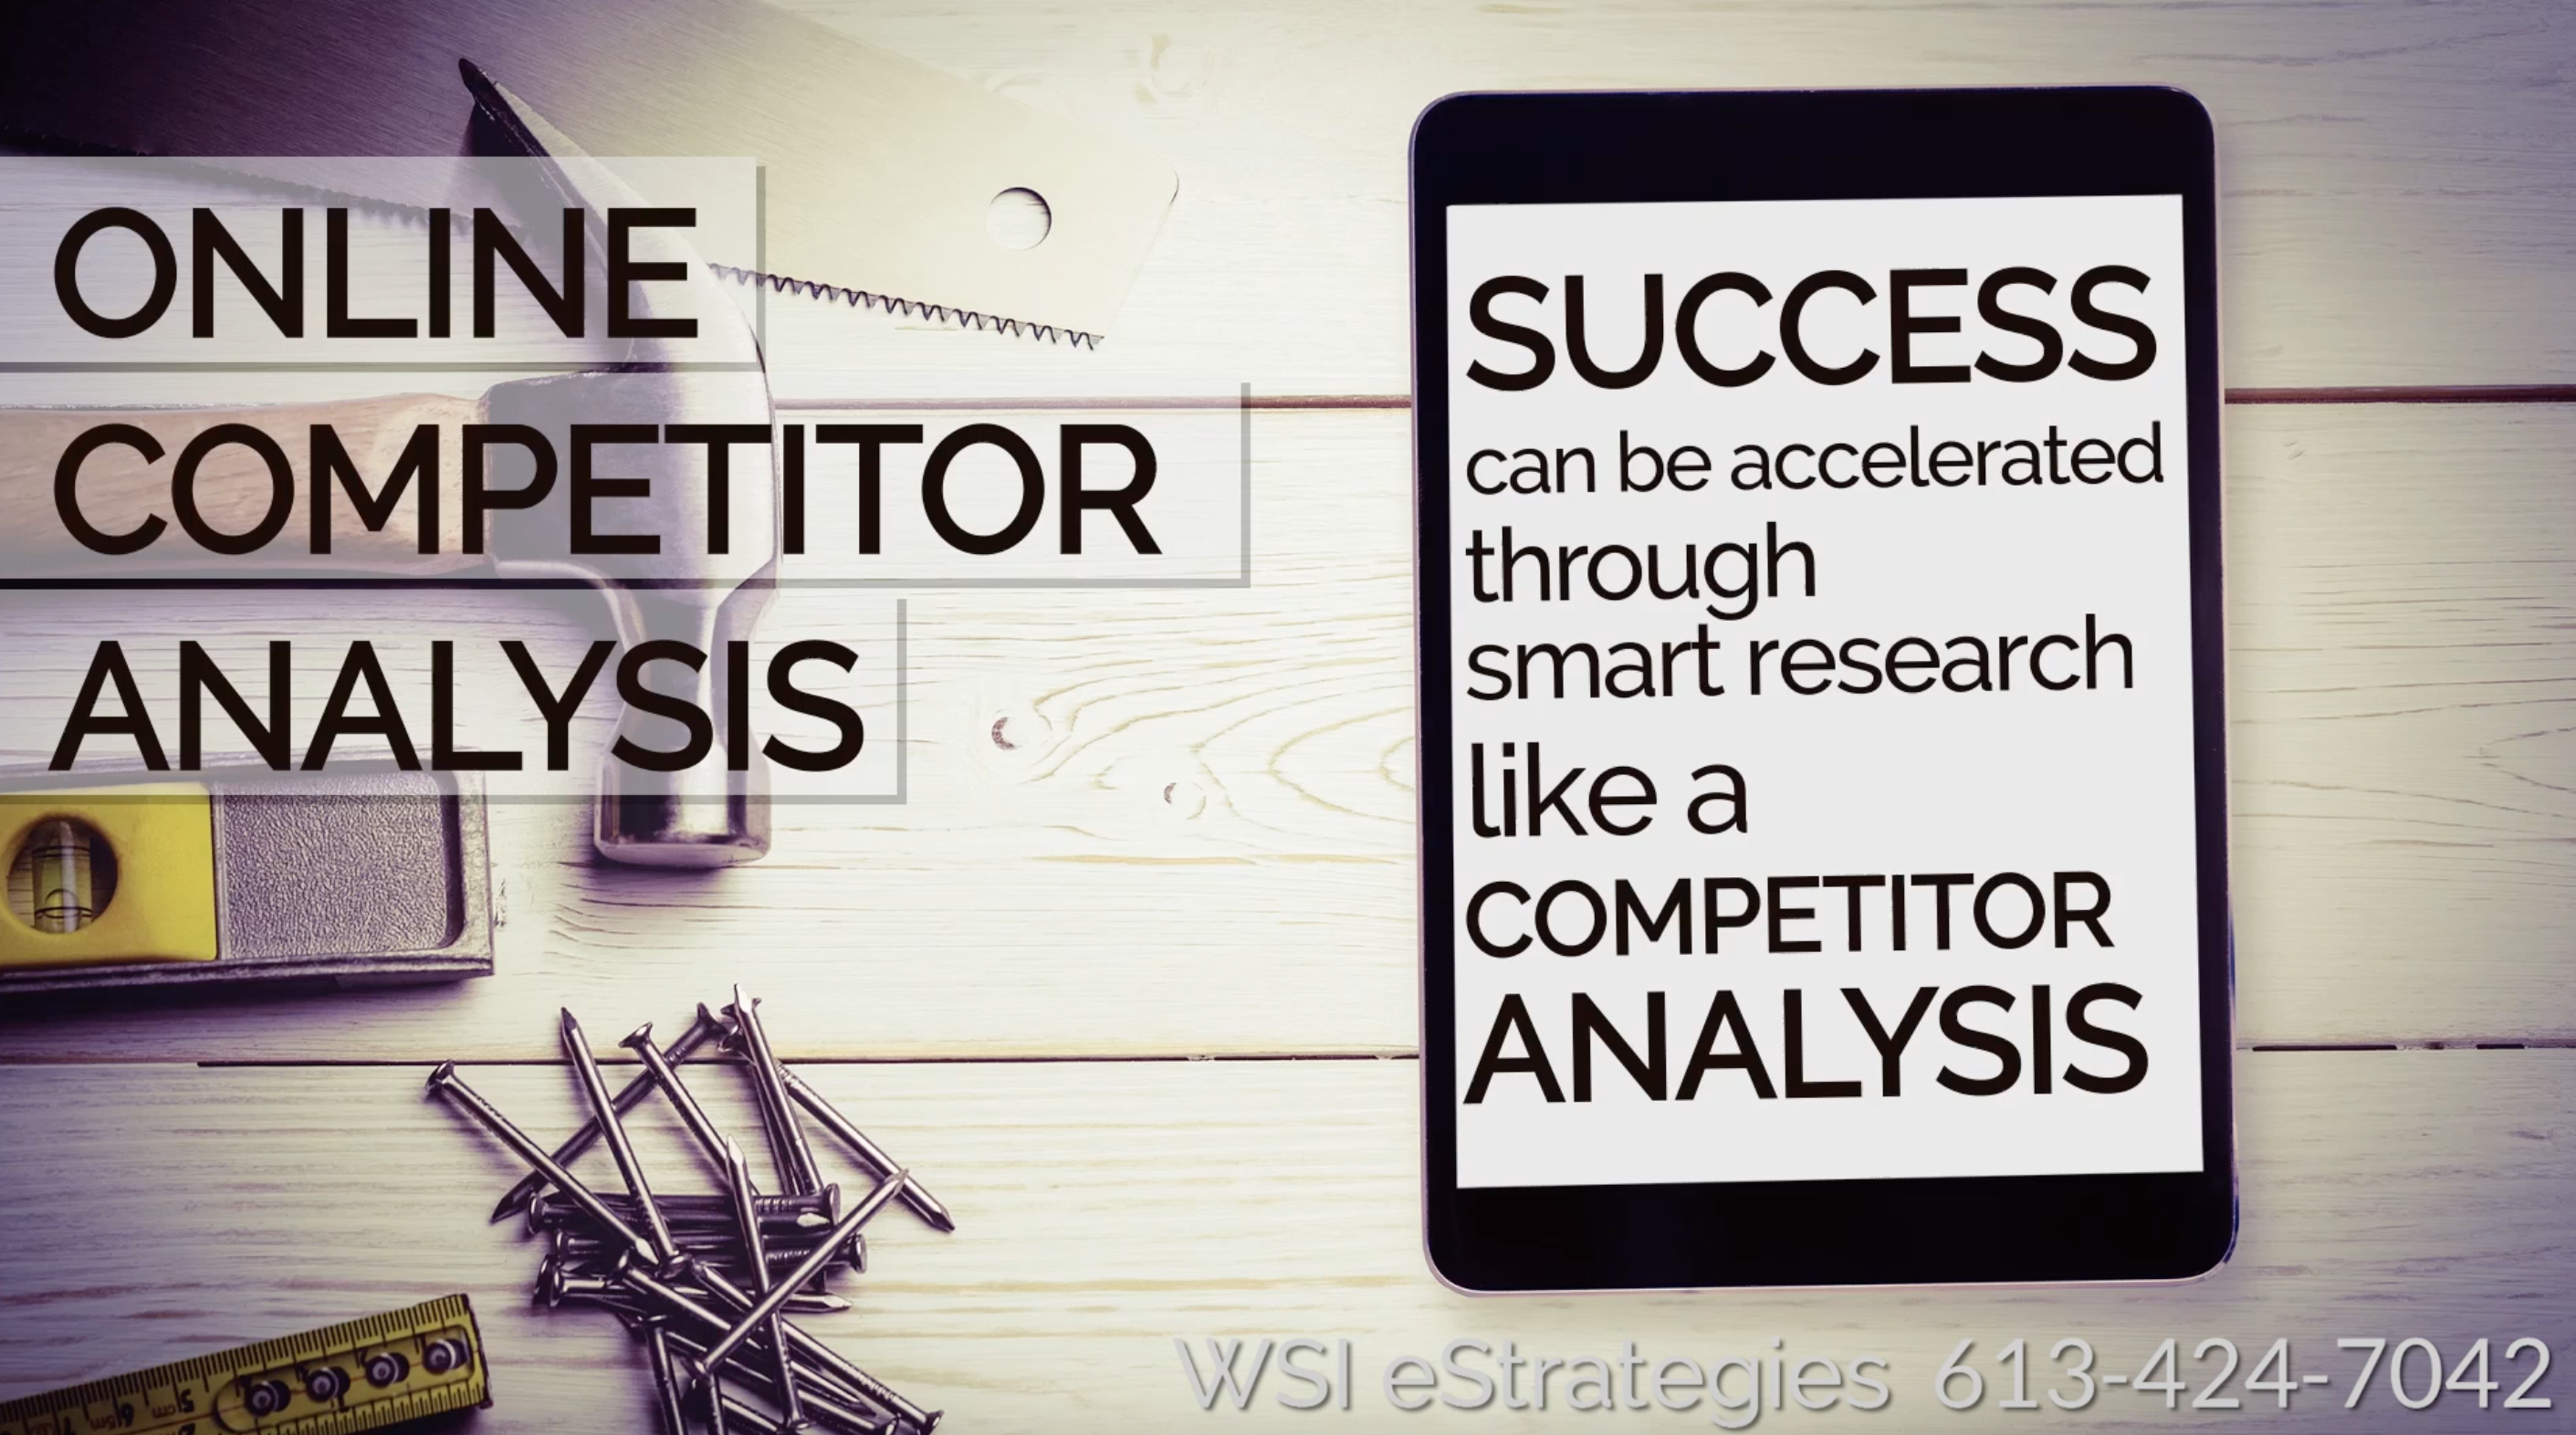 Competitor Analysis to Gain a Competitive Advantage